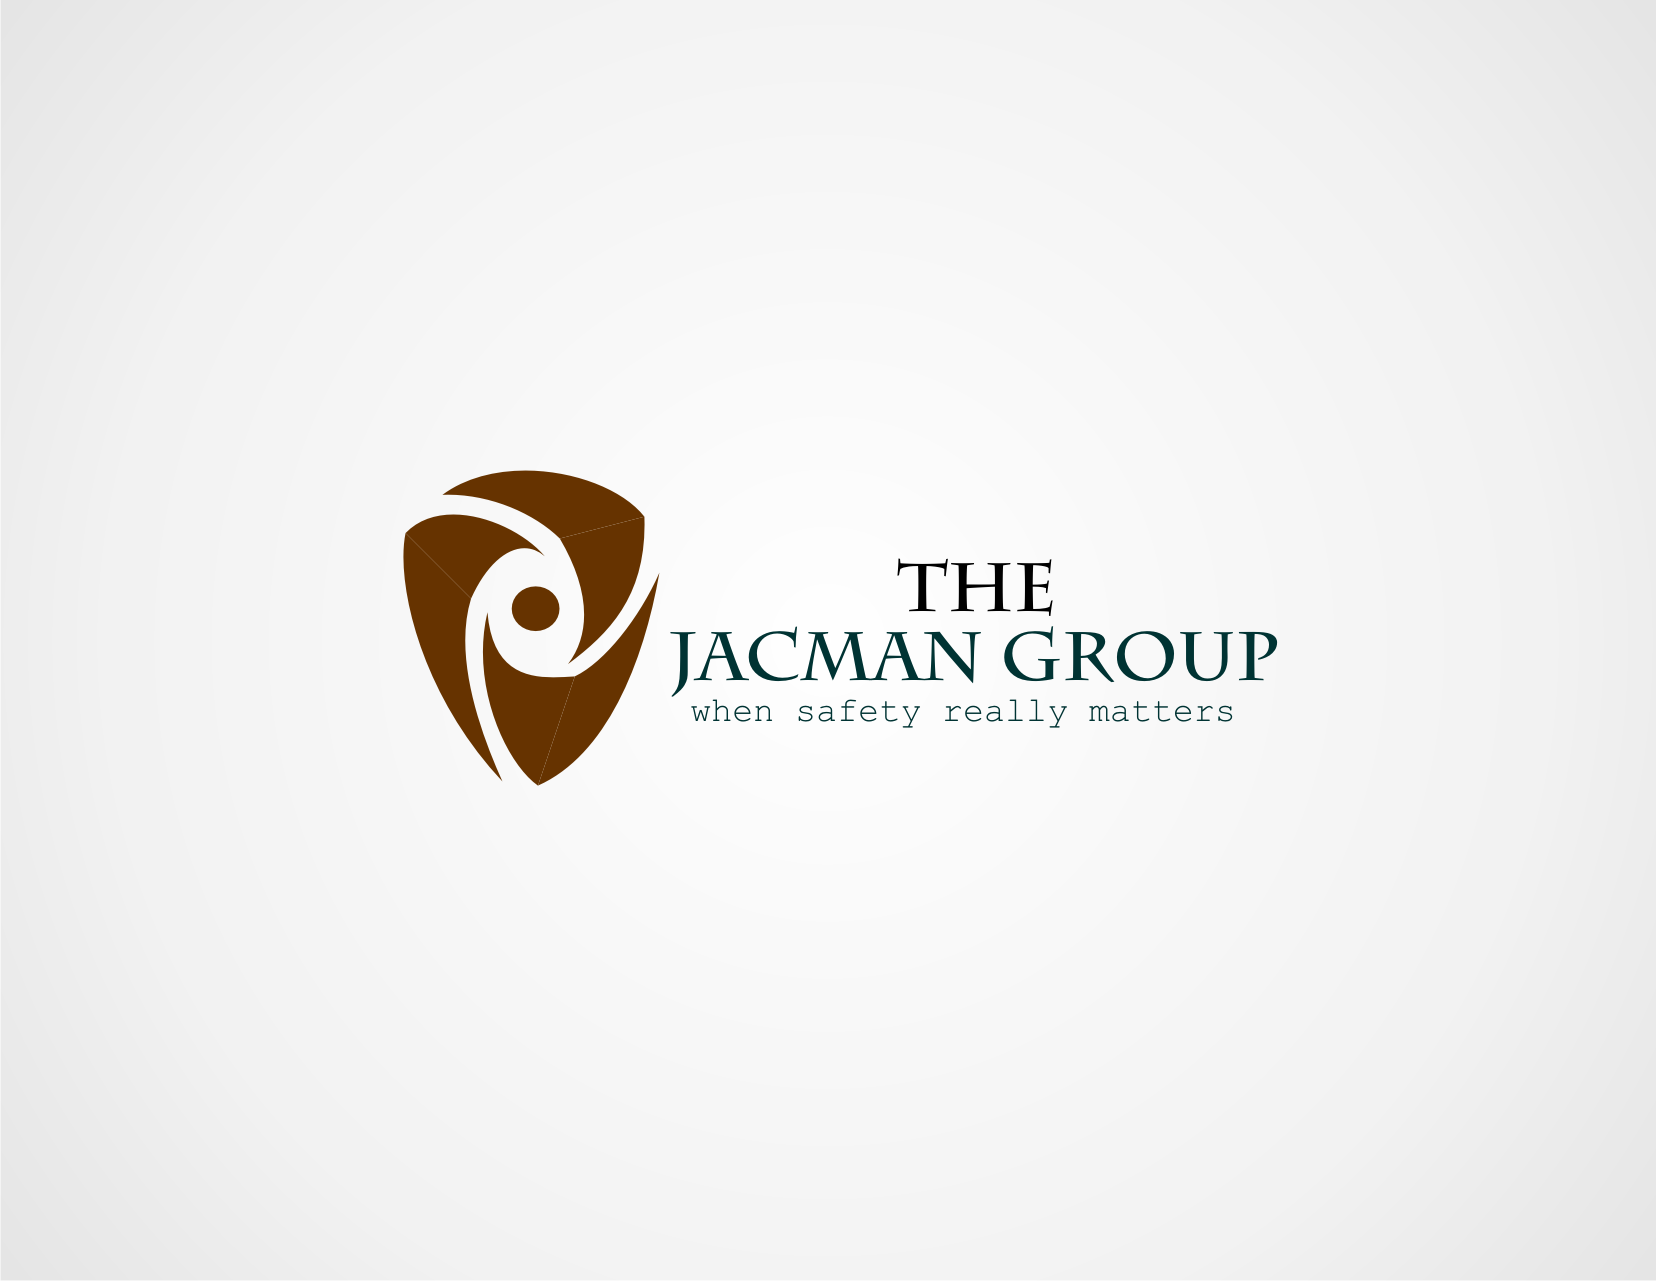 Logo Design by Galih Prasetyo - Entry No. 10 in the Logo Design Contest The Jacman Group Logo Design.